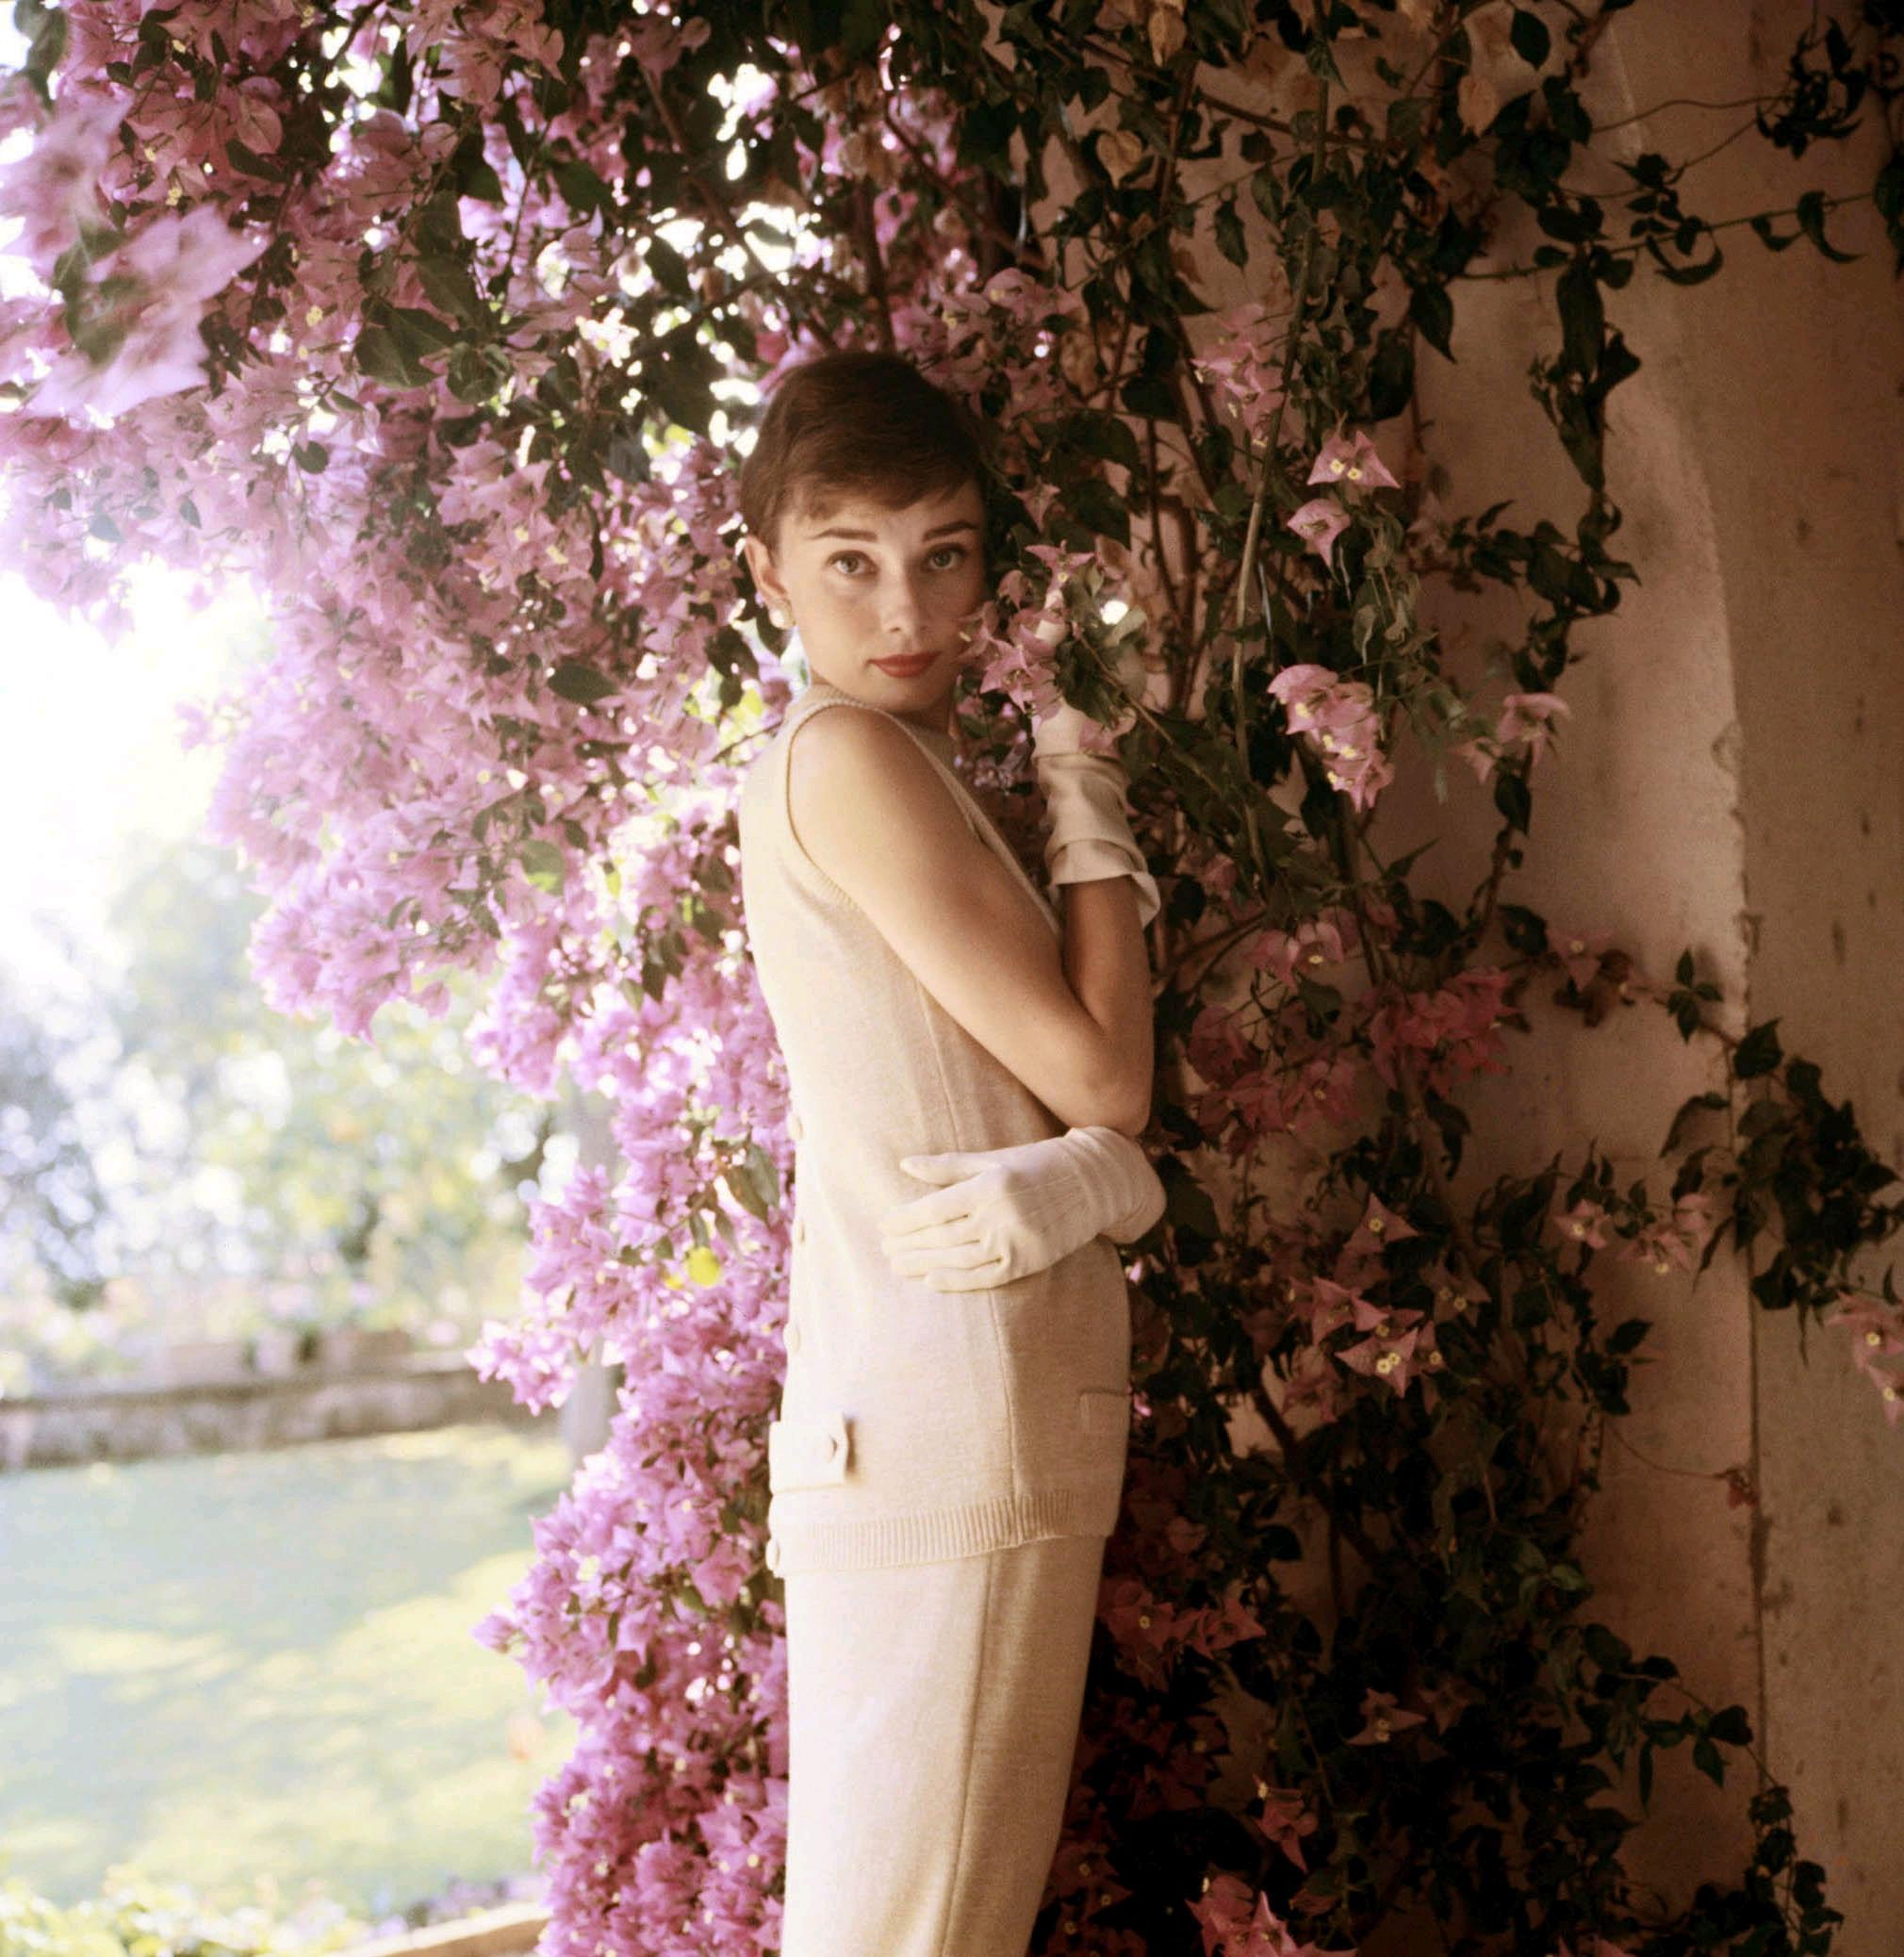 audrey hepburn - photo #34